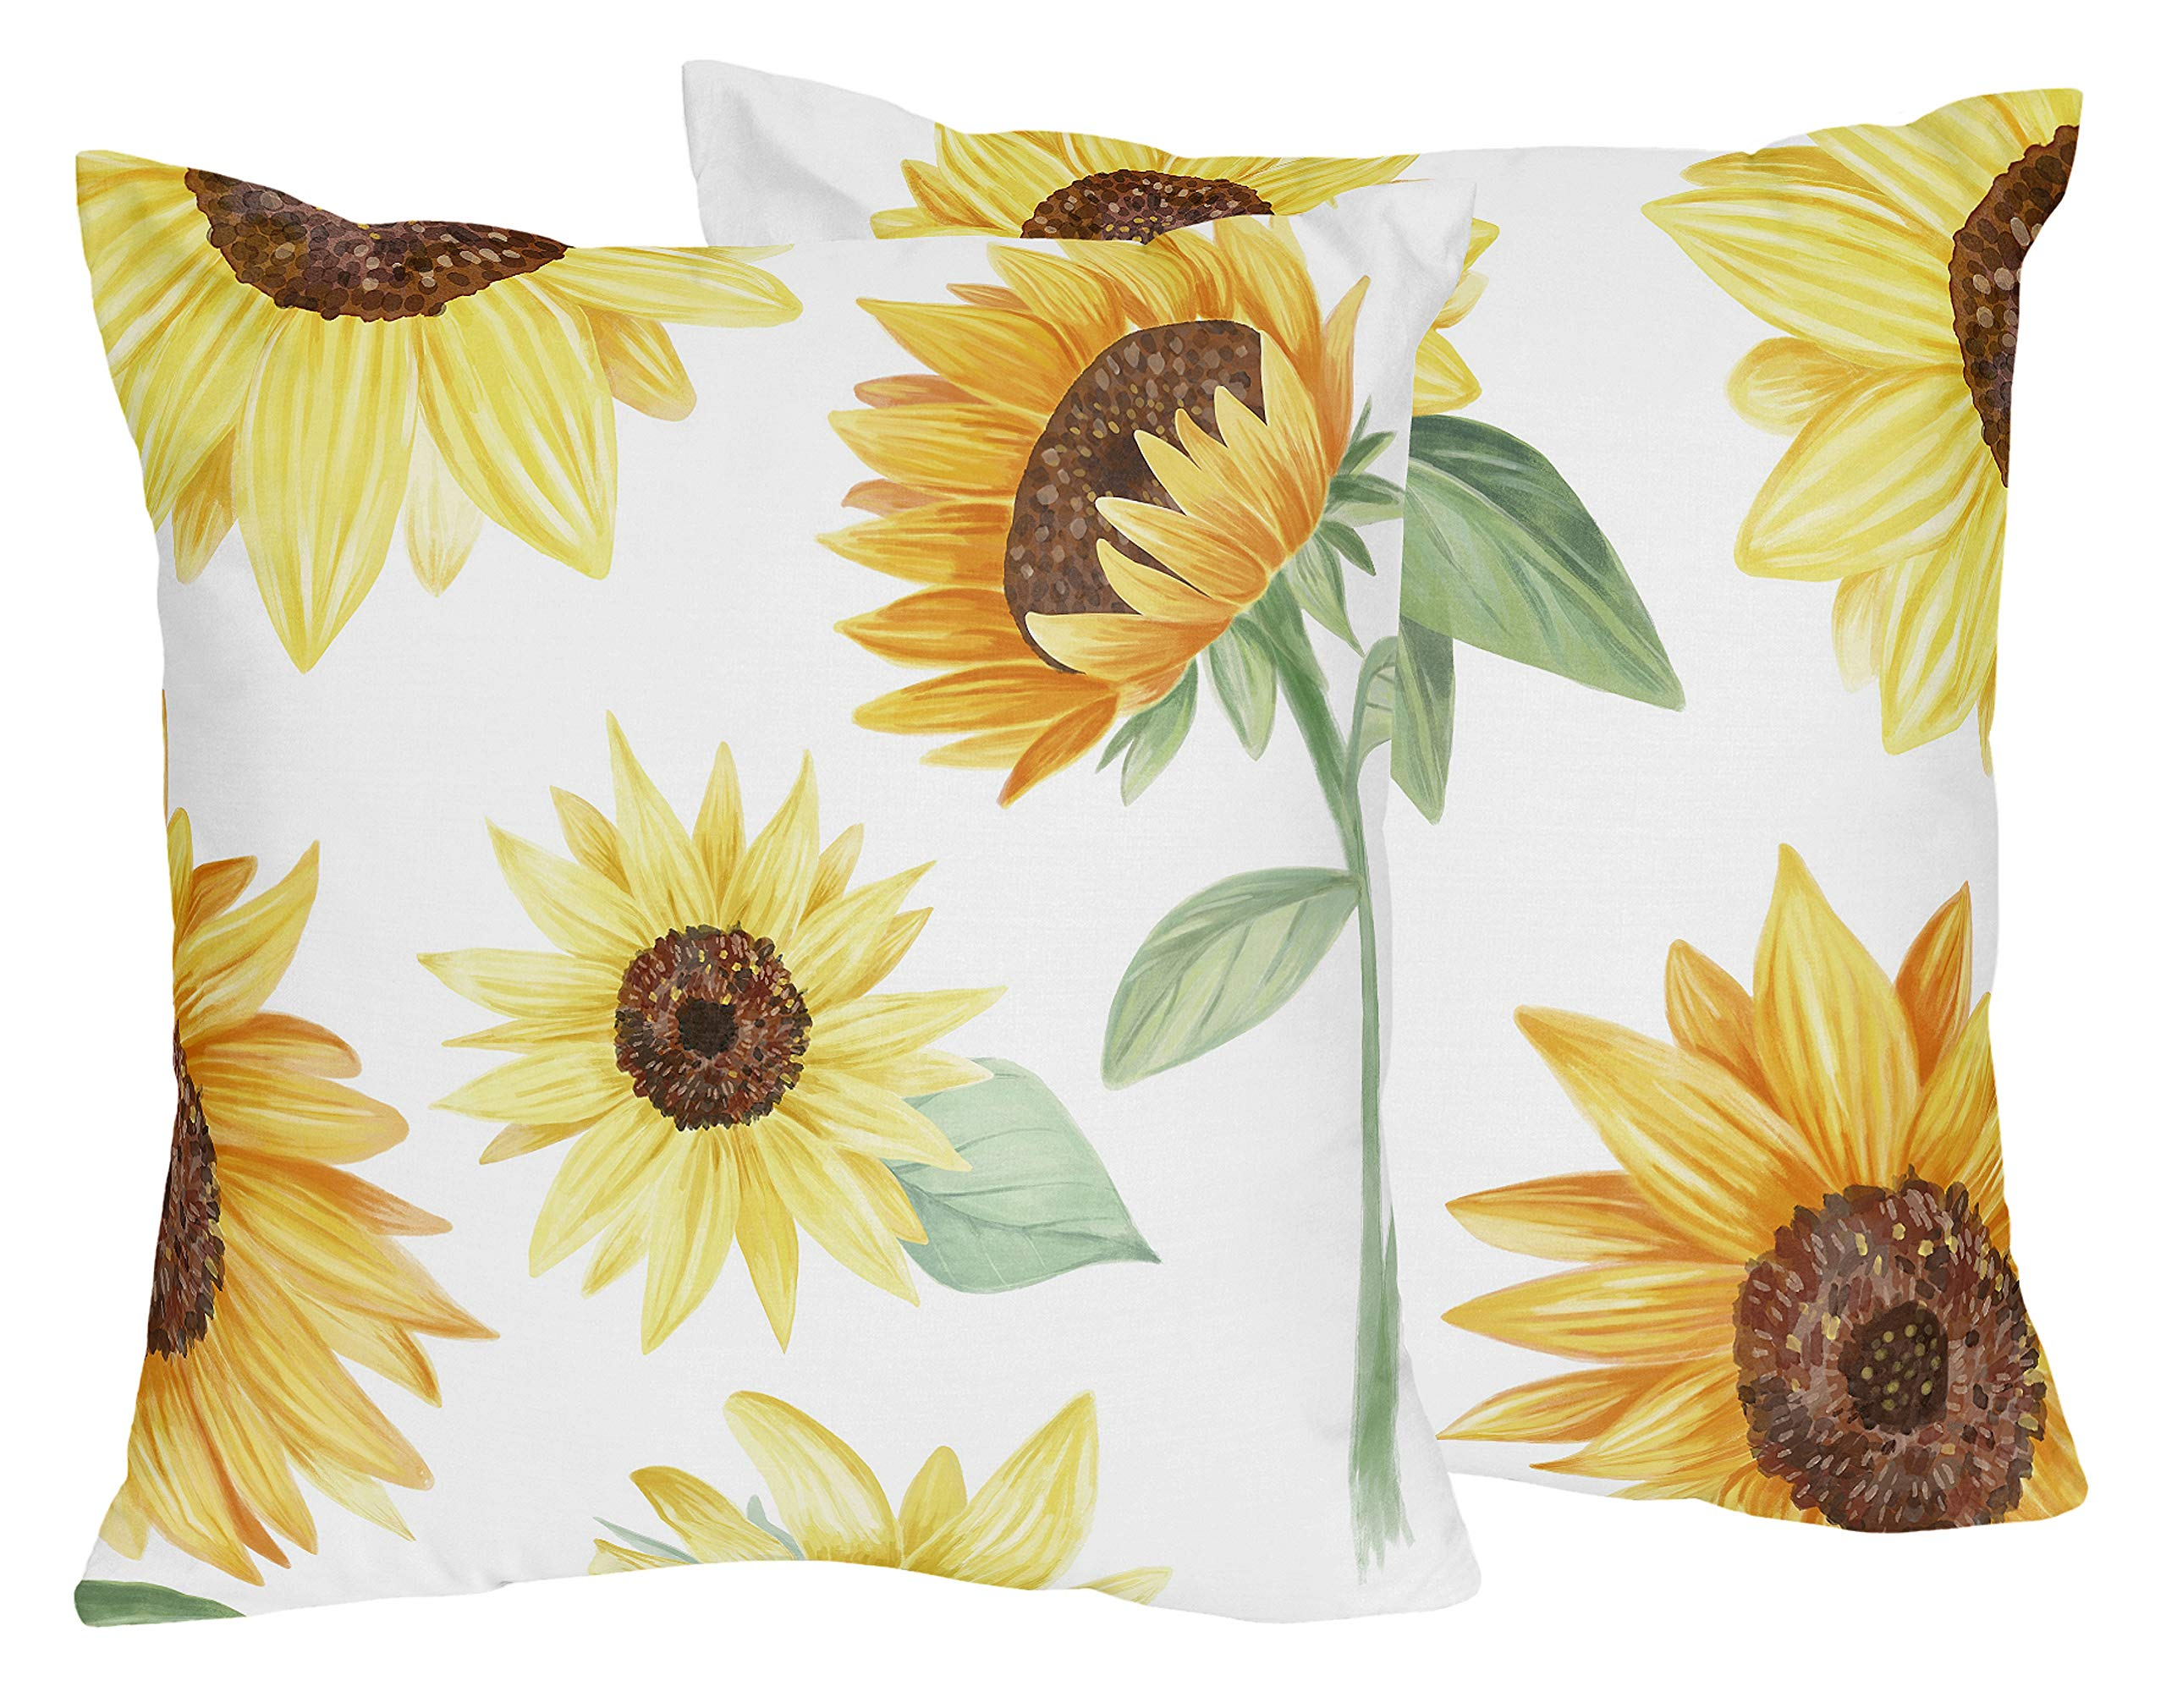 Sweet Jojo Designs Yellow, Green and White Sunflower Boho Floral Decorative Accent Throw Pillows - Set of 2 - Farmhouse Watercolor Flower, 18 in. x 18 in. Each in. Each, Orange by Sweet Jojo Designs